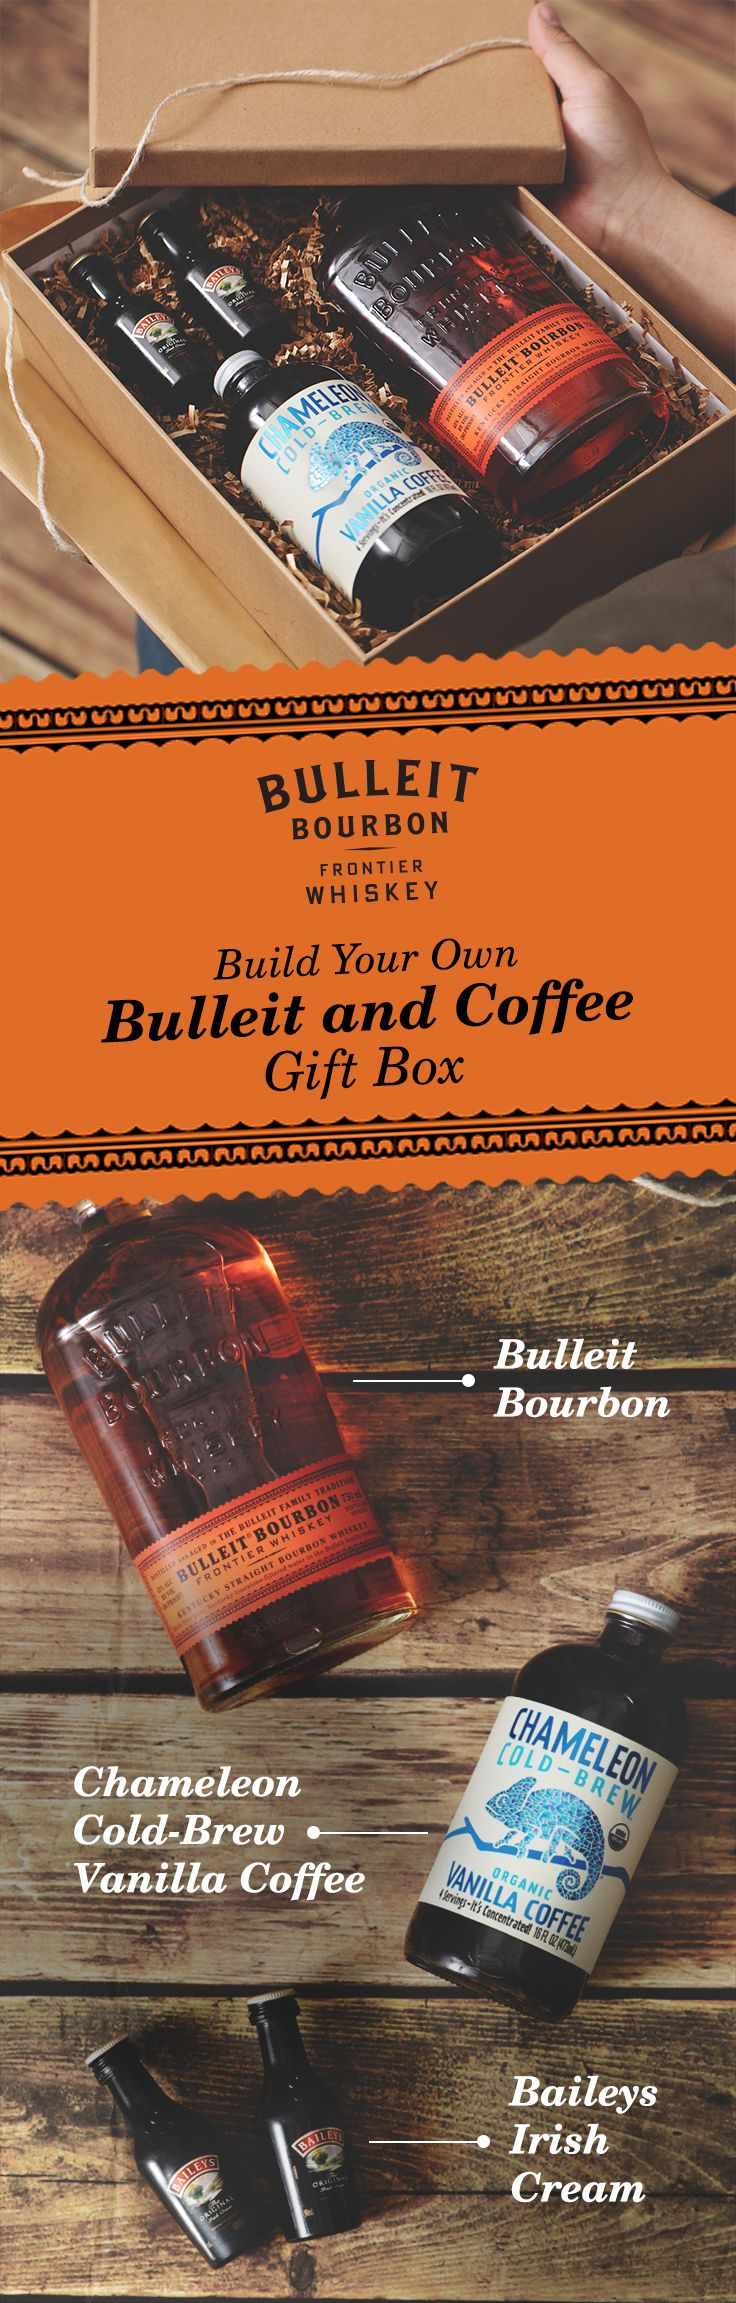 "Give your friend the gift of Bulleit Bourbon and the means to mix it. Whether for a birthday, holiday, graduation, or anniversary—this 'Build Your Own: Bulleit and Coffee Gift Box"" is perfect for any occasion. With Chameleon Cold-Brew Organic Vanilla Coffee, Bulleit Bourbon, and Baileys Original Irish Cream, this is a delicious and creamy drink for the whiskey lover in your life. Head over to the Chameleon Coffee and Baileys websites for purchase."